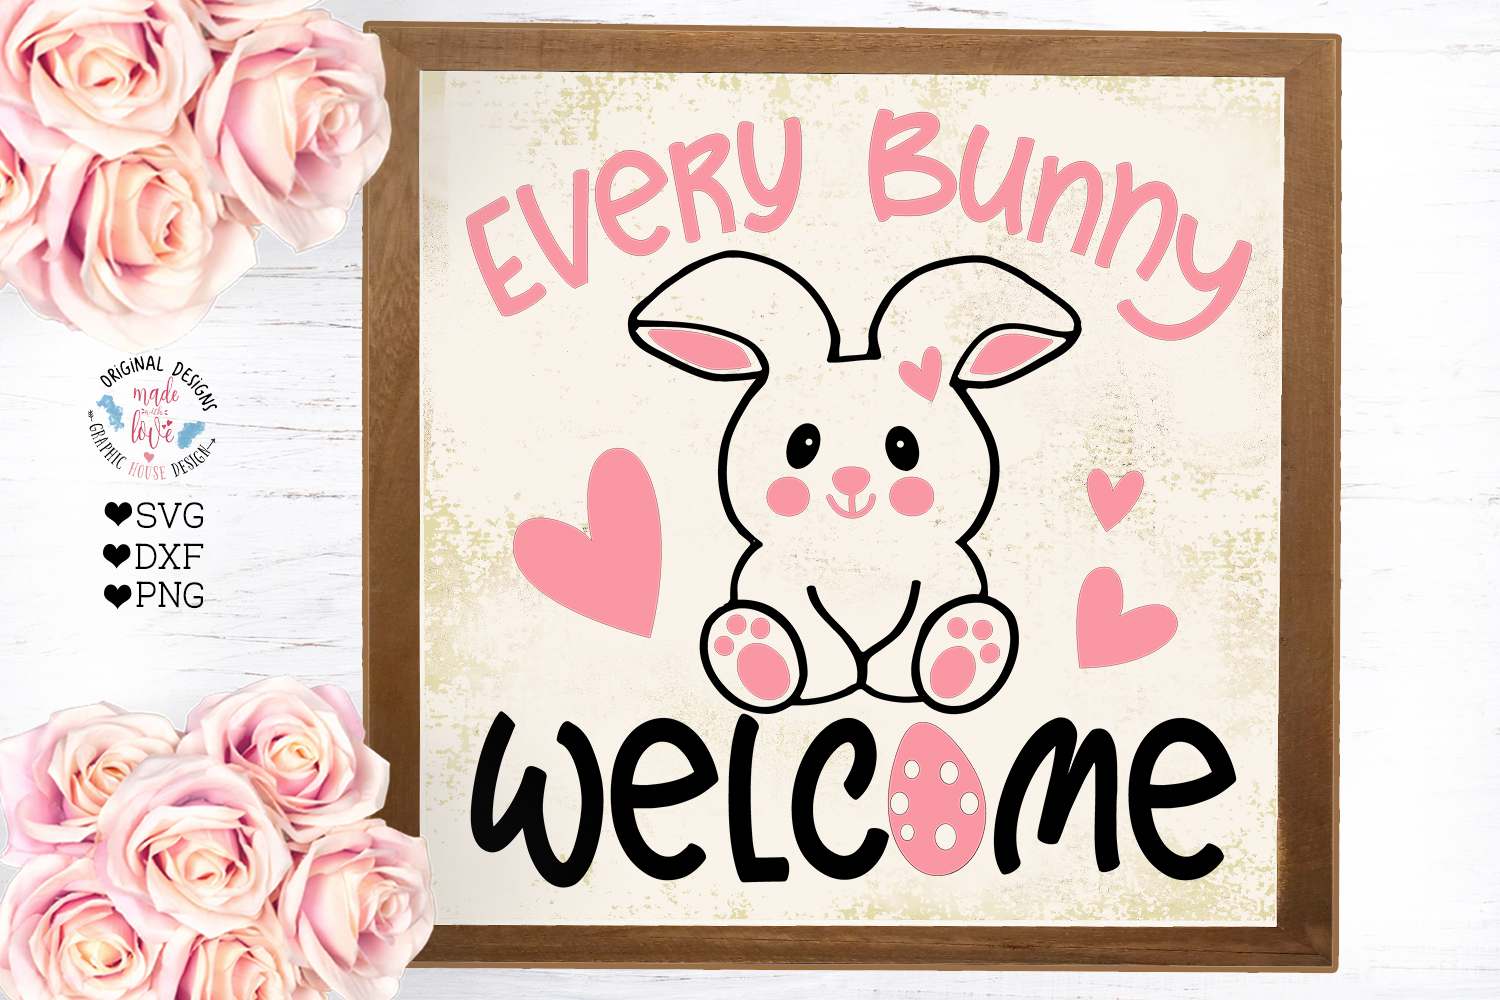 Every Bunny Welcome - Easter Cut File example image 2